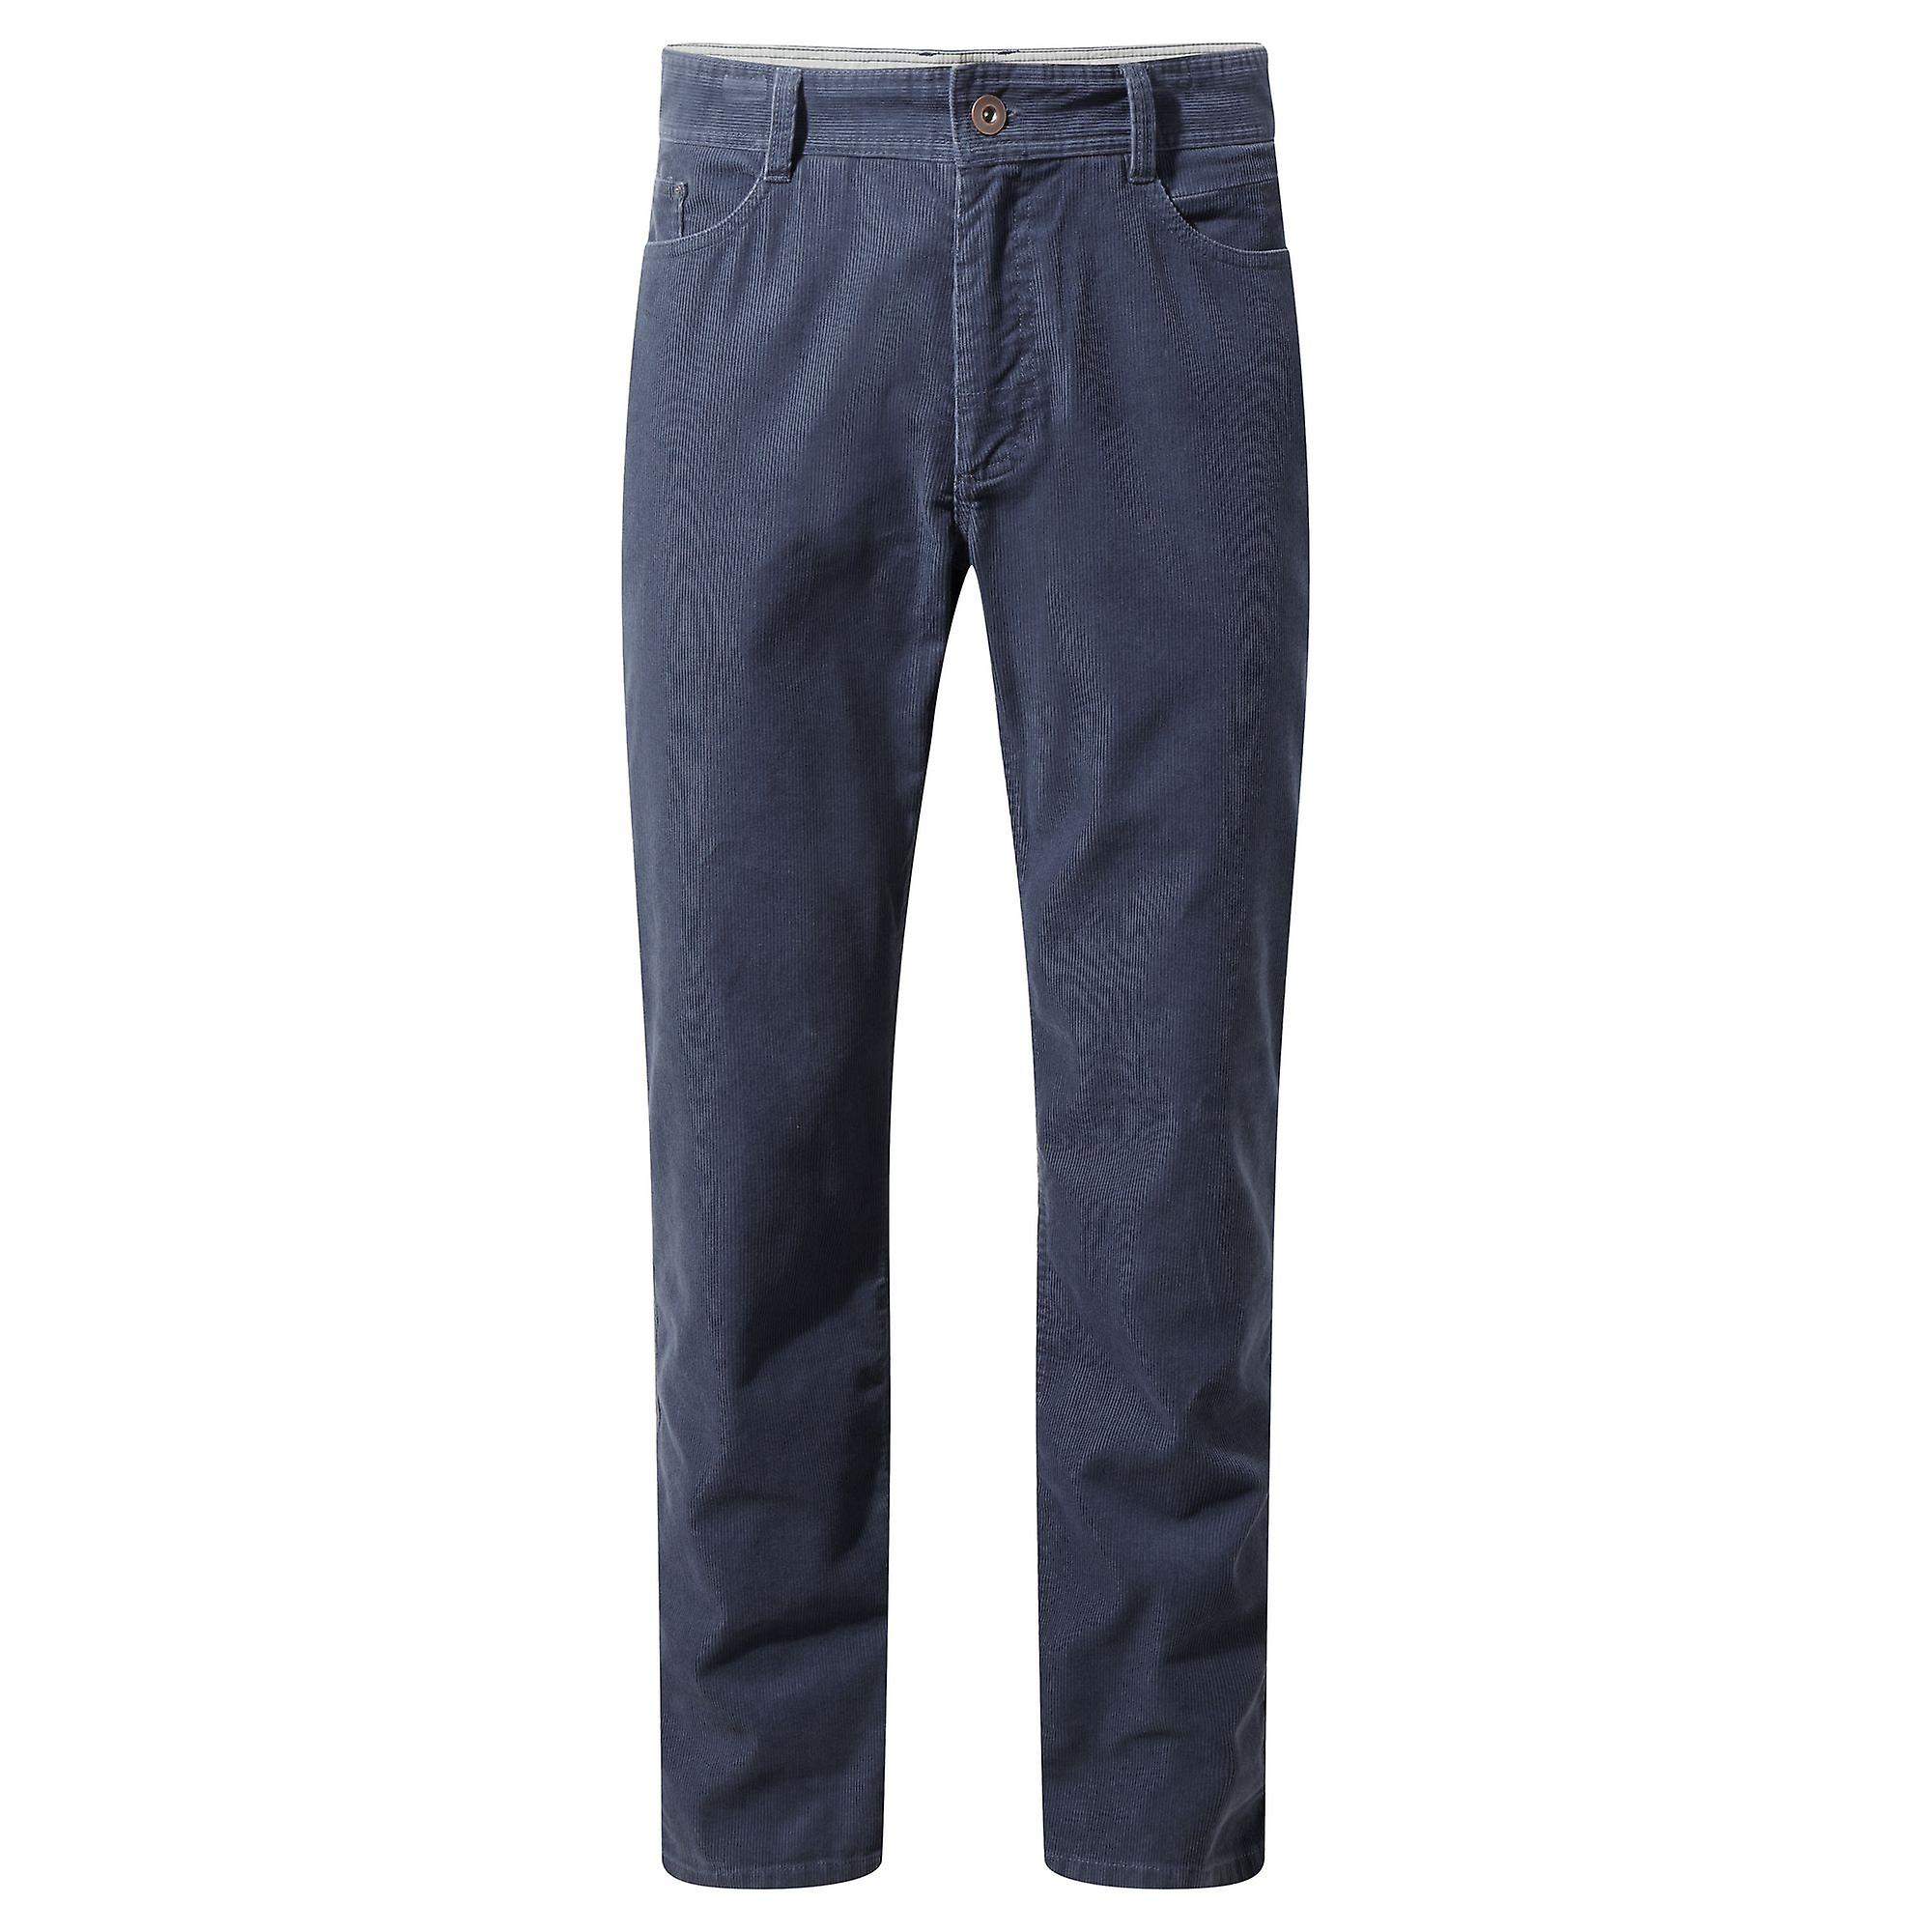 Craghoppers Mens Bardsey Twill Corduroy Trousers